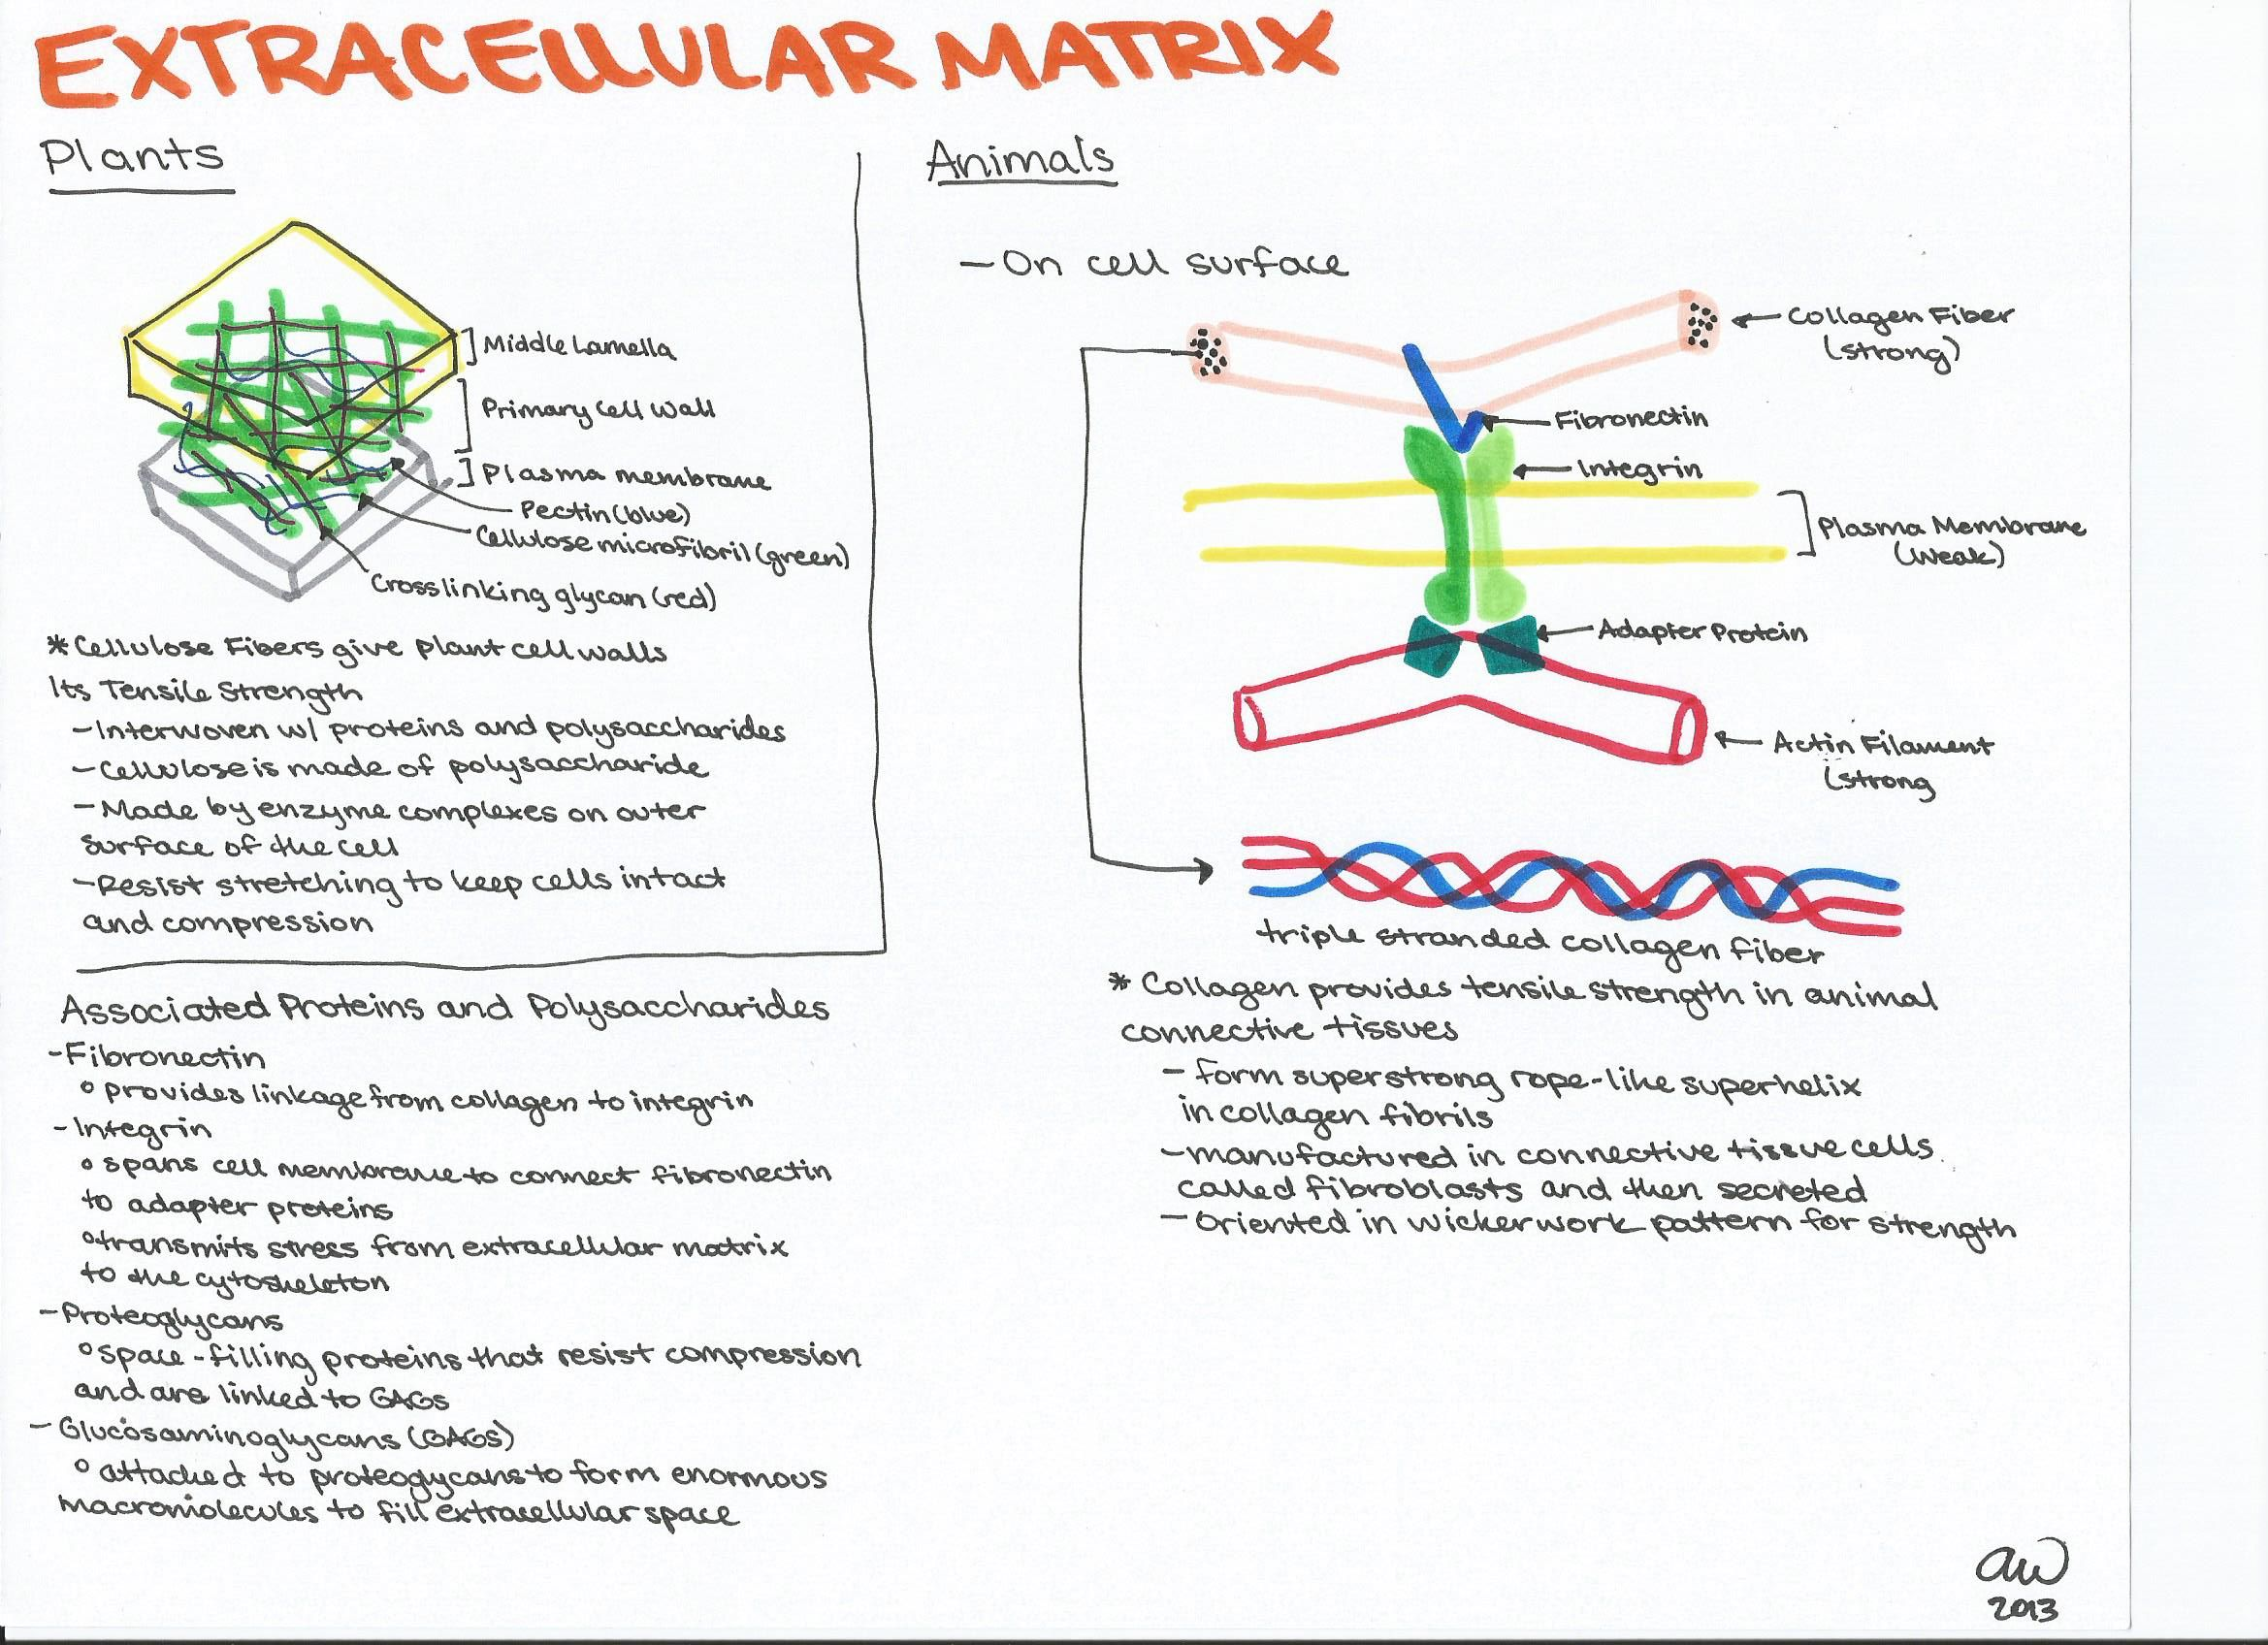 ashleysbiostudyguides.files.wordpress.com 2013 04 extracellular ...